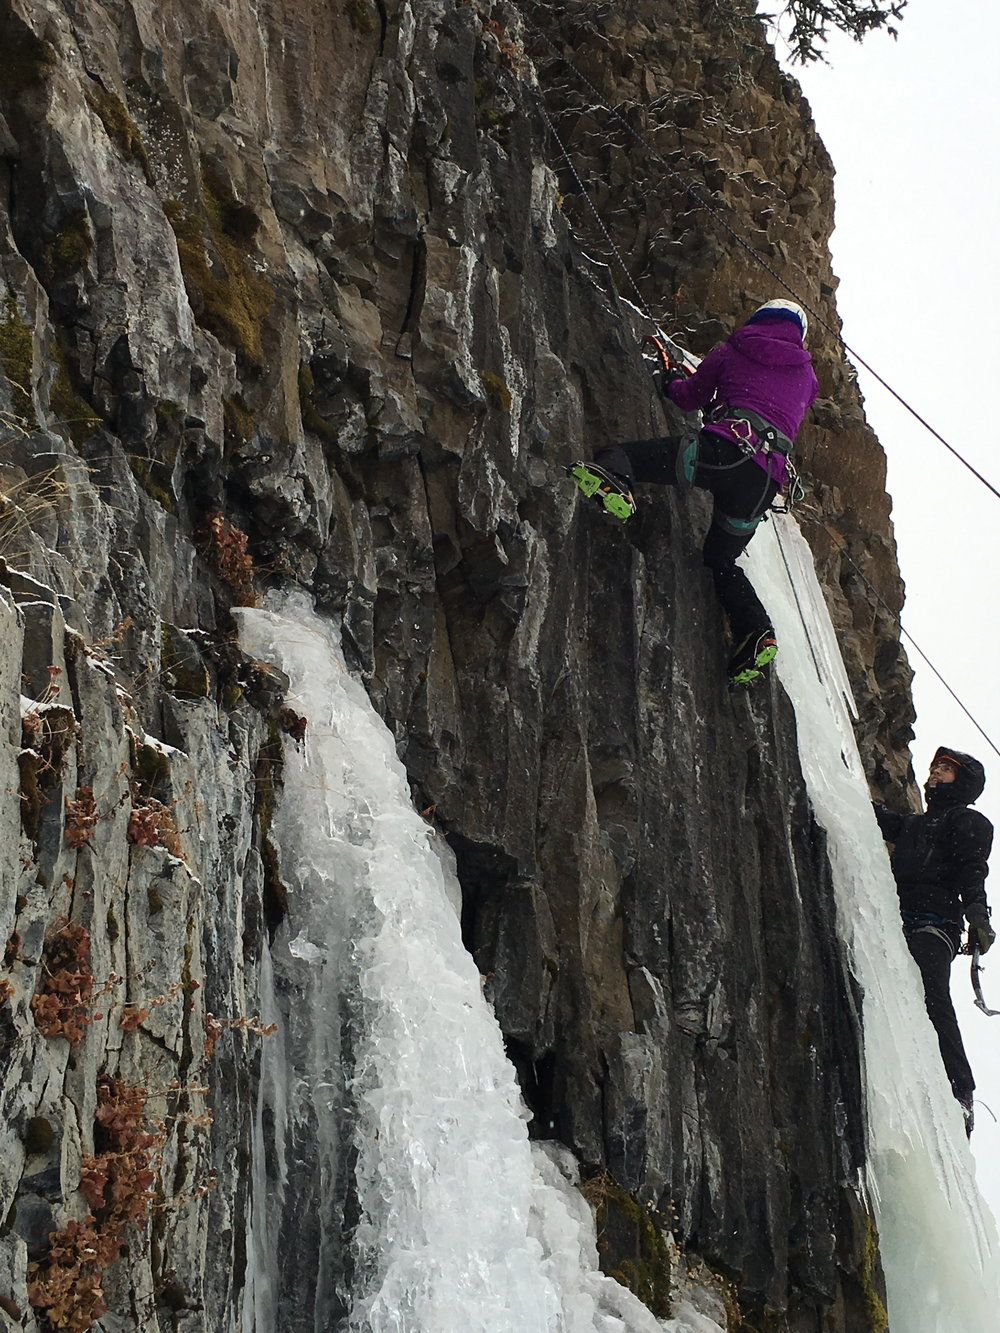 Lisa climbing a mixed line during the Bozeman Ice Fest.